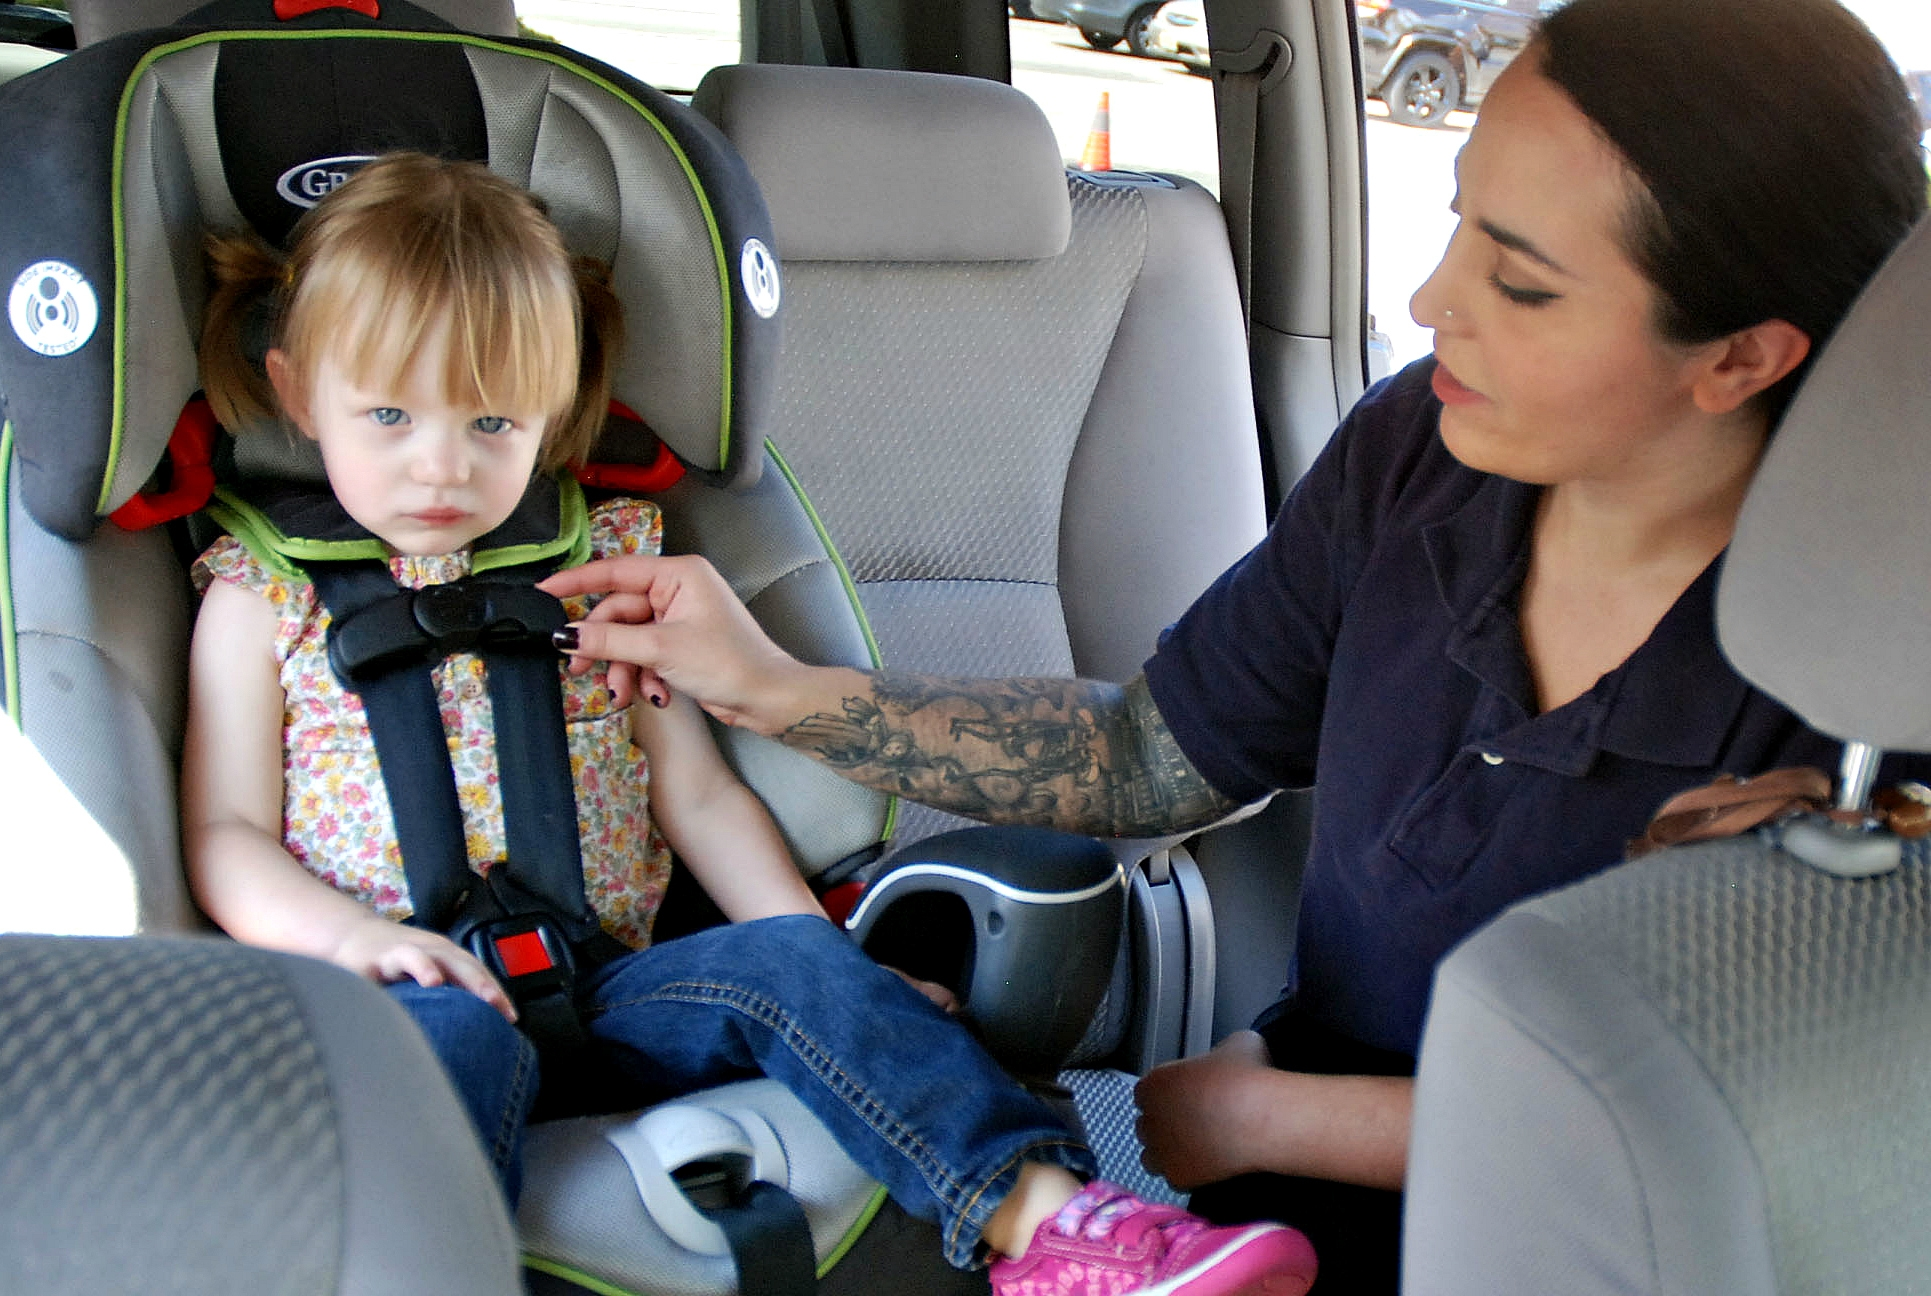 Union County Offers Child Safety Seat Inspections and Other Traffic